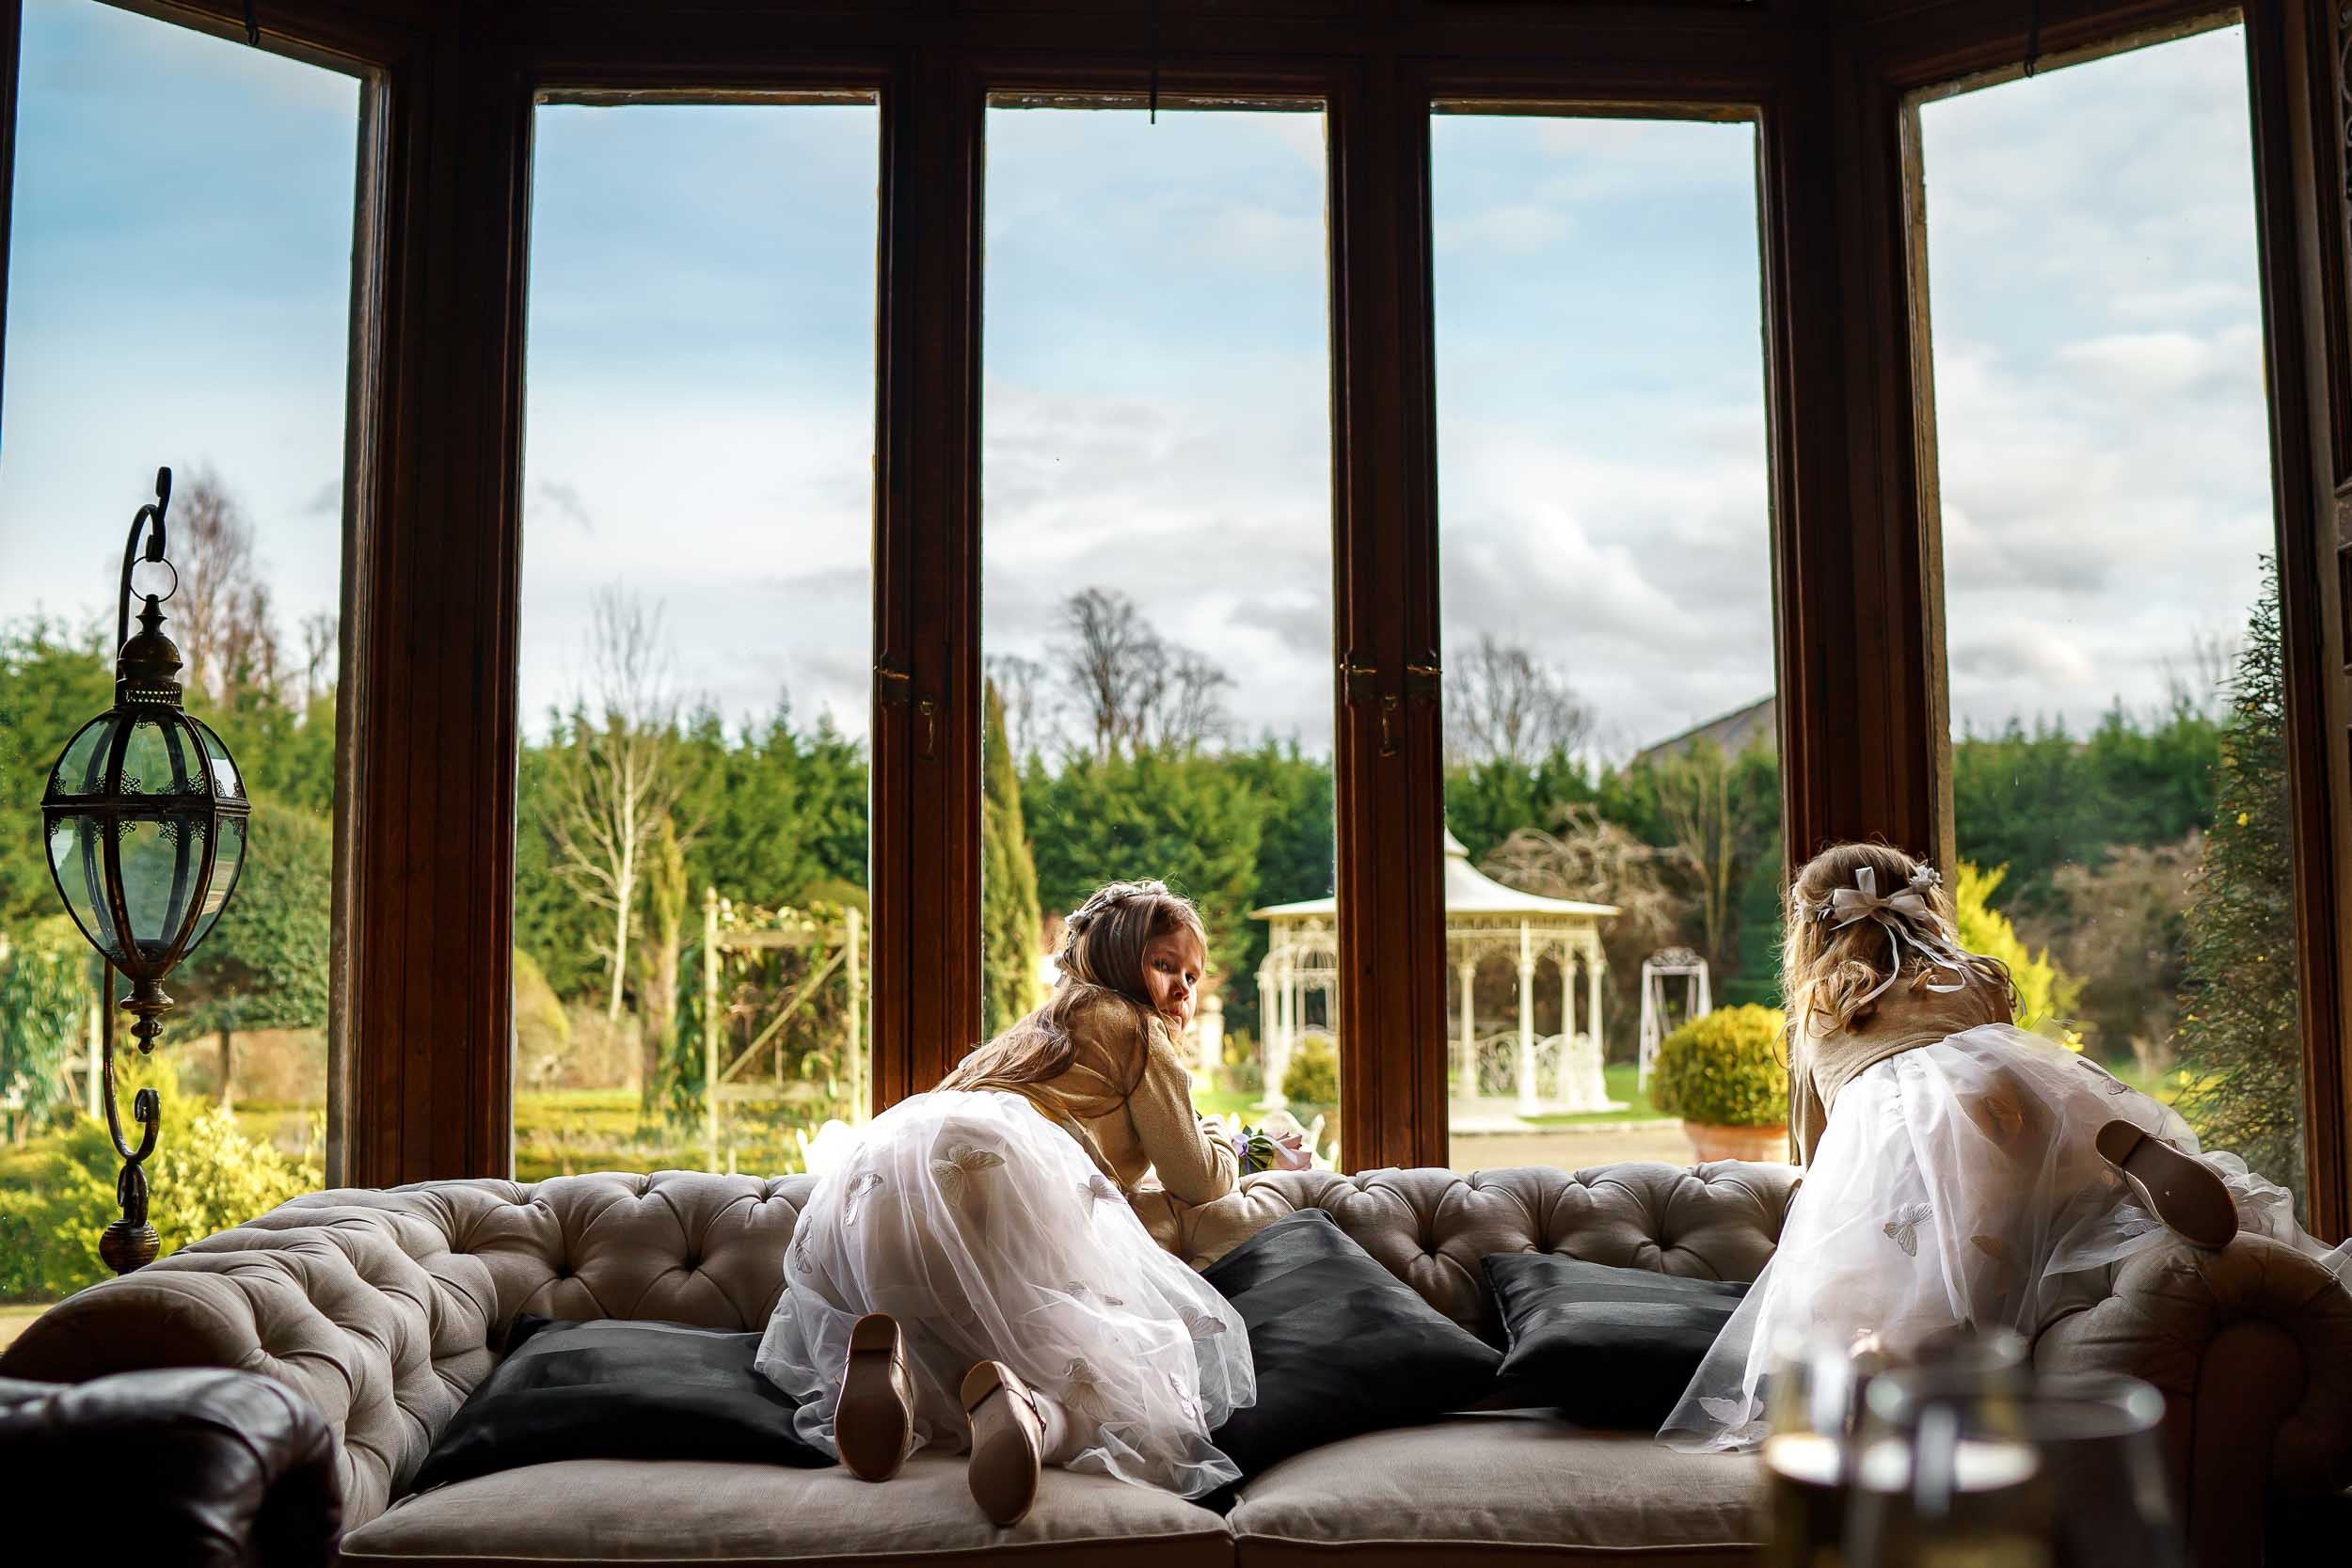 Manor, By, the, lake, wedding, photographer, Manor by the Lake, Wedding Photographer, Wedding Photographer in Cheltenham. Cheltenham, Weddings, Herefordshire, Wedding Photographer,